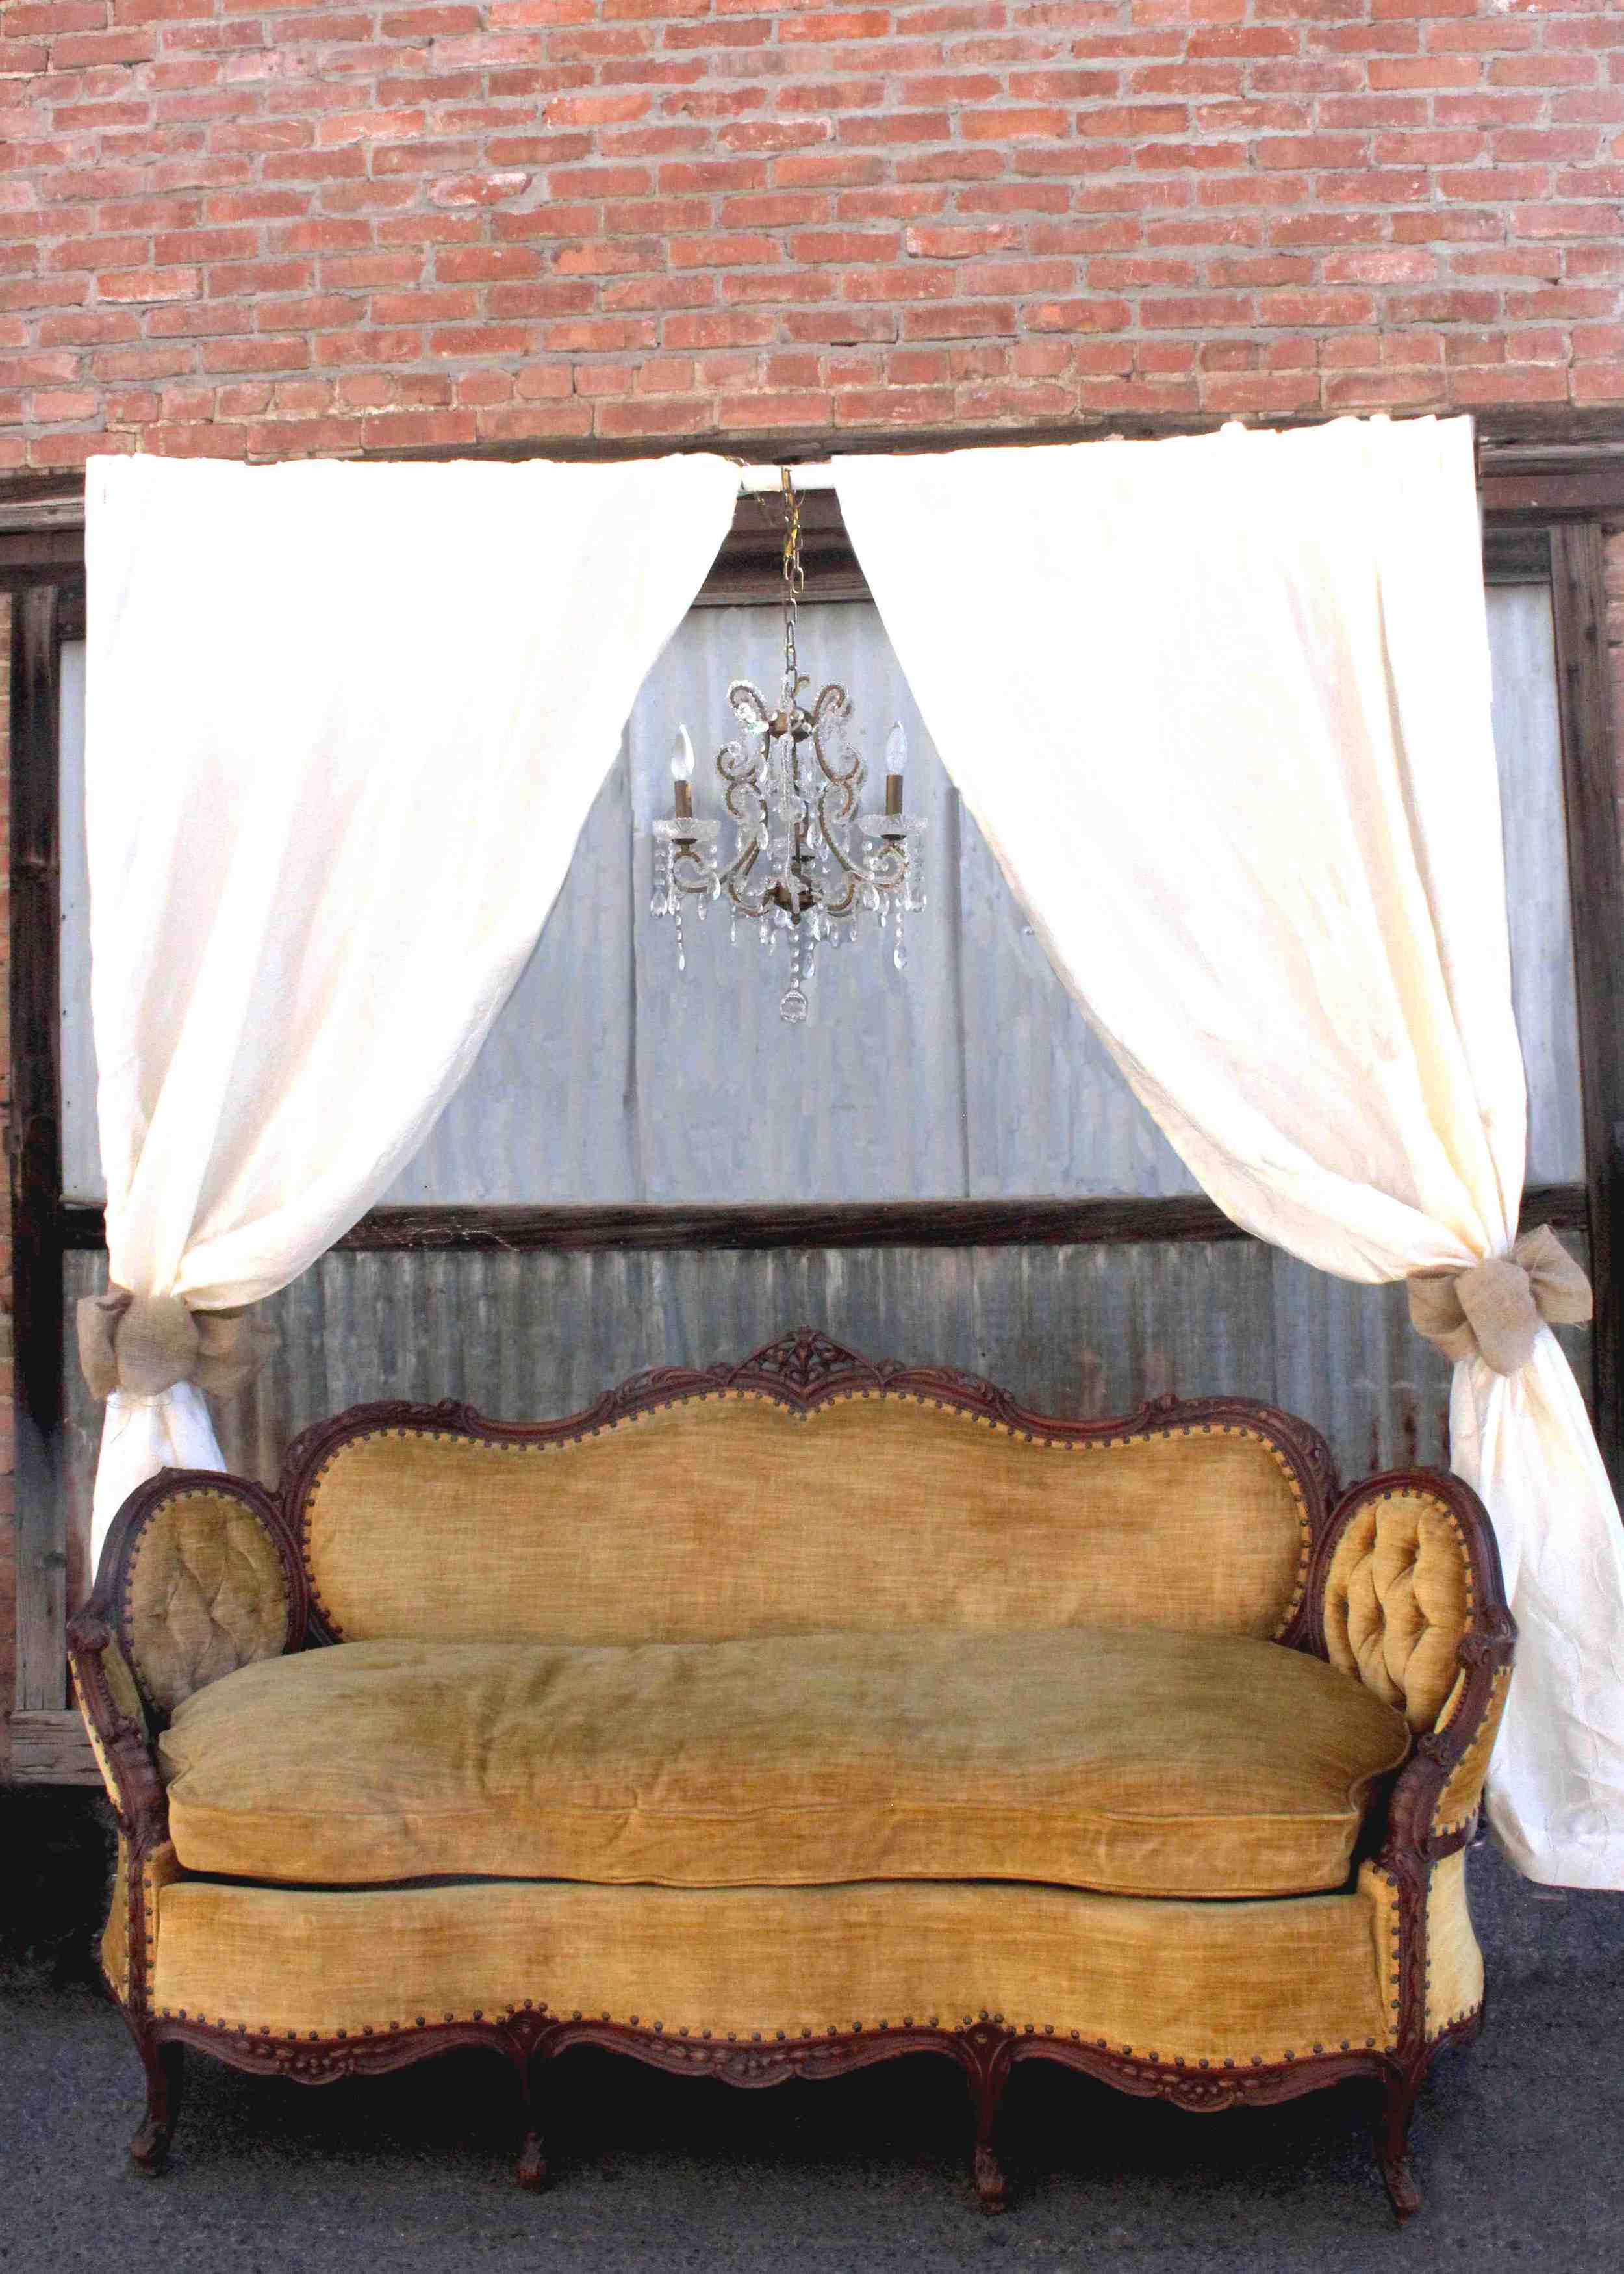 Belle couch and Prim design burlap bows, chandelier and drapes